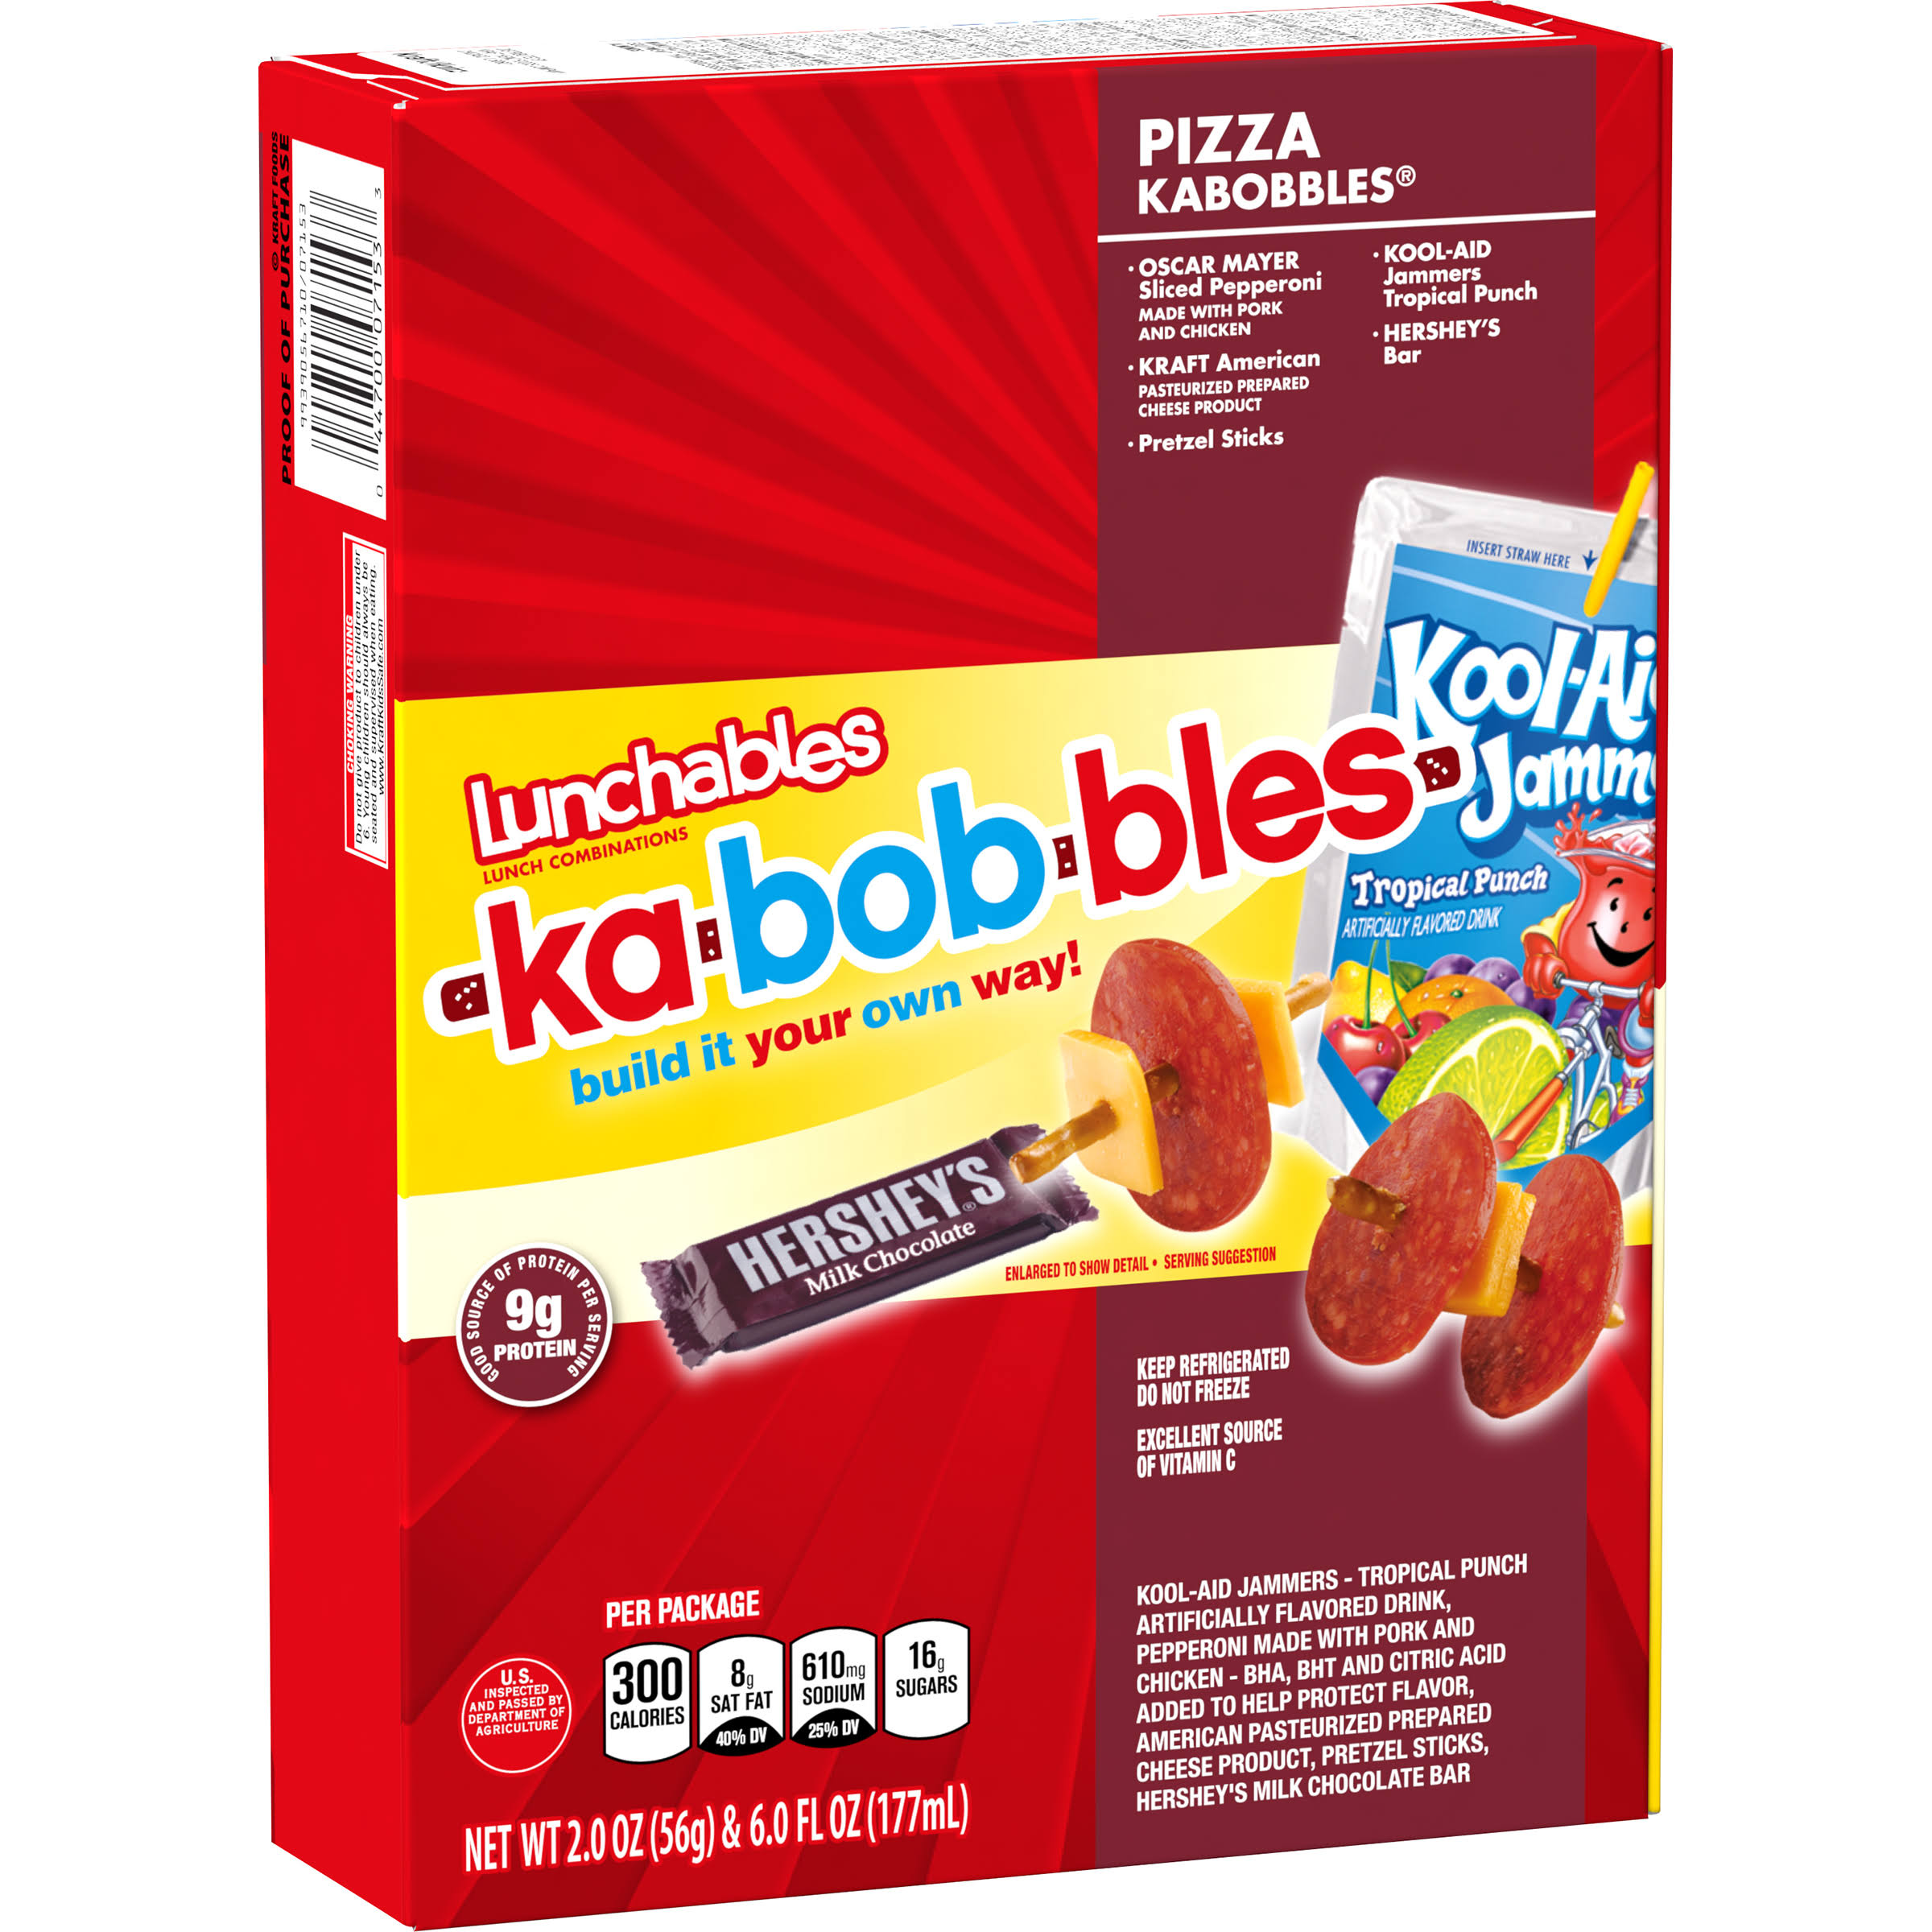 Lunchables Lunch Combinations - Pizza Kabobbles, 2oz